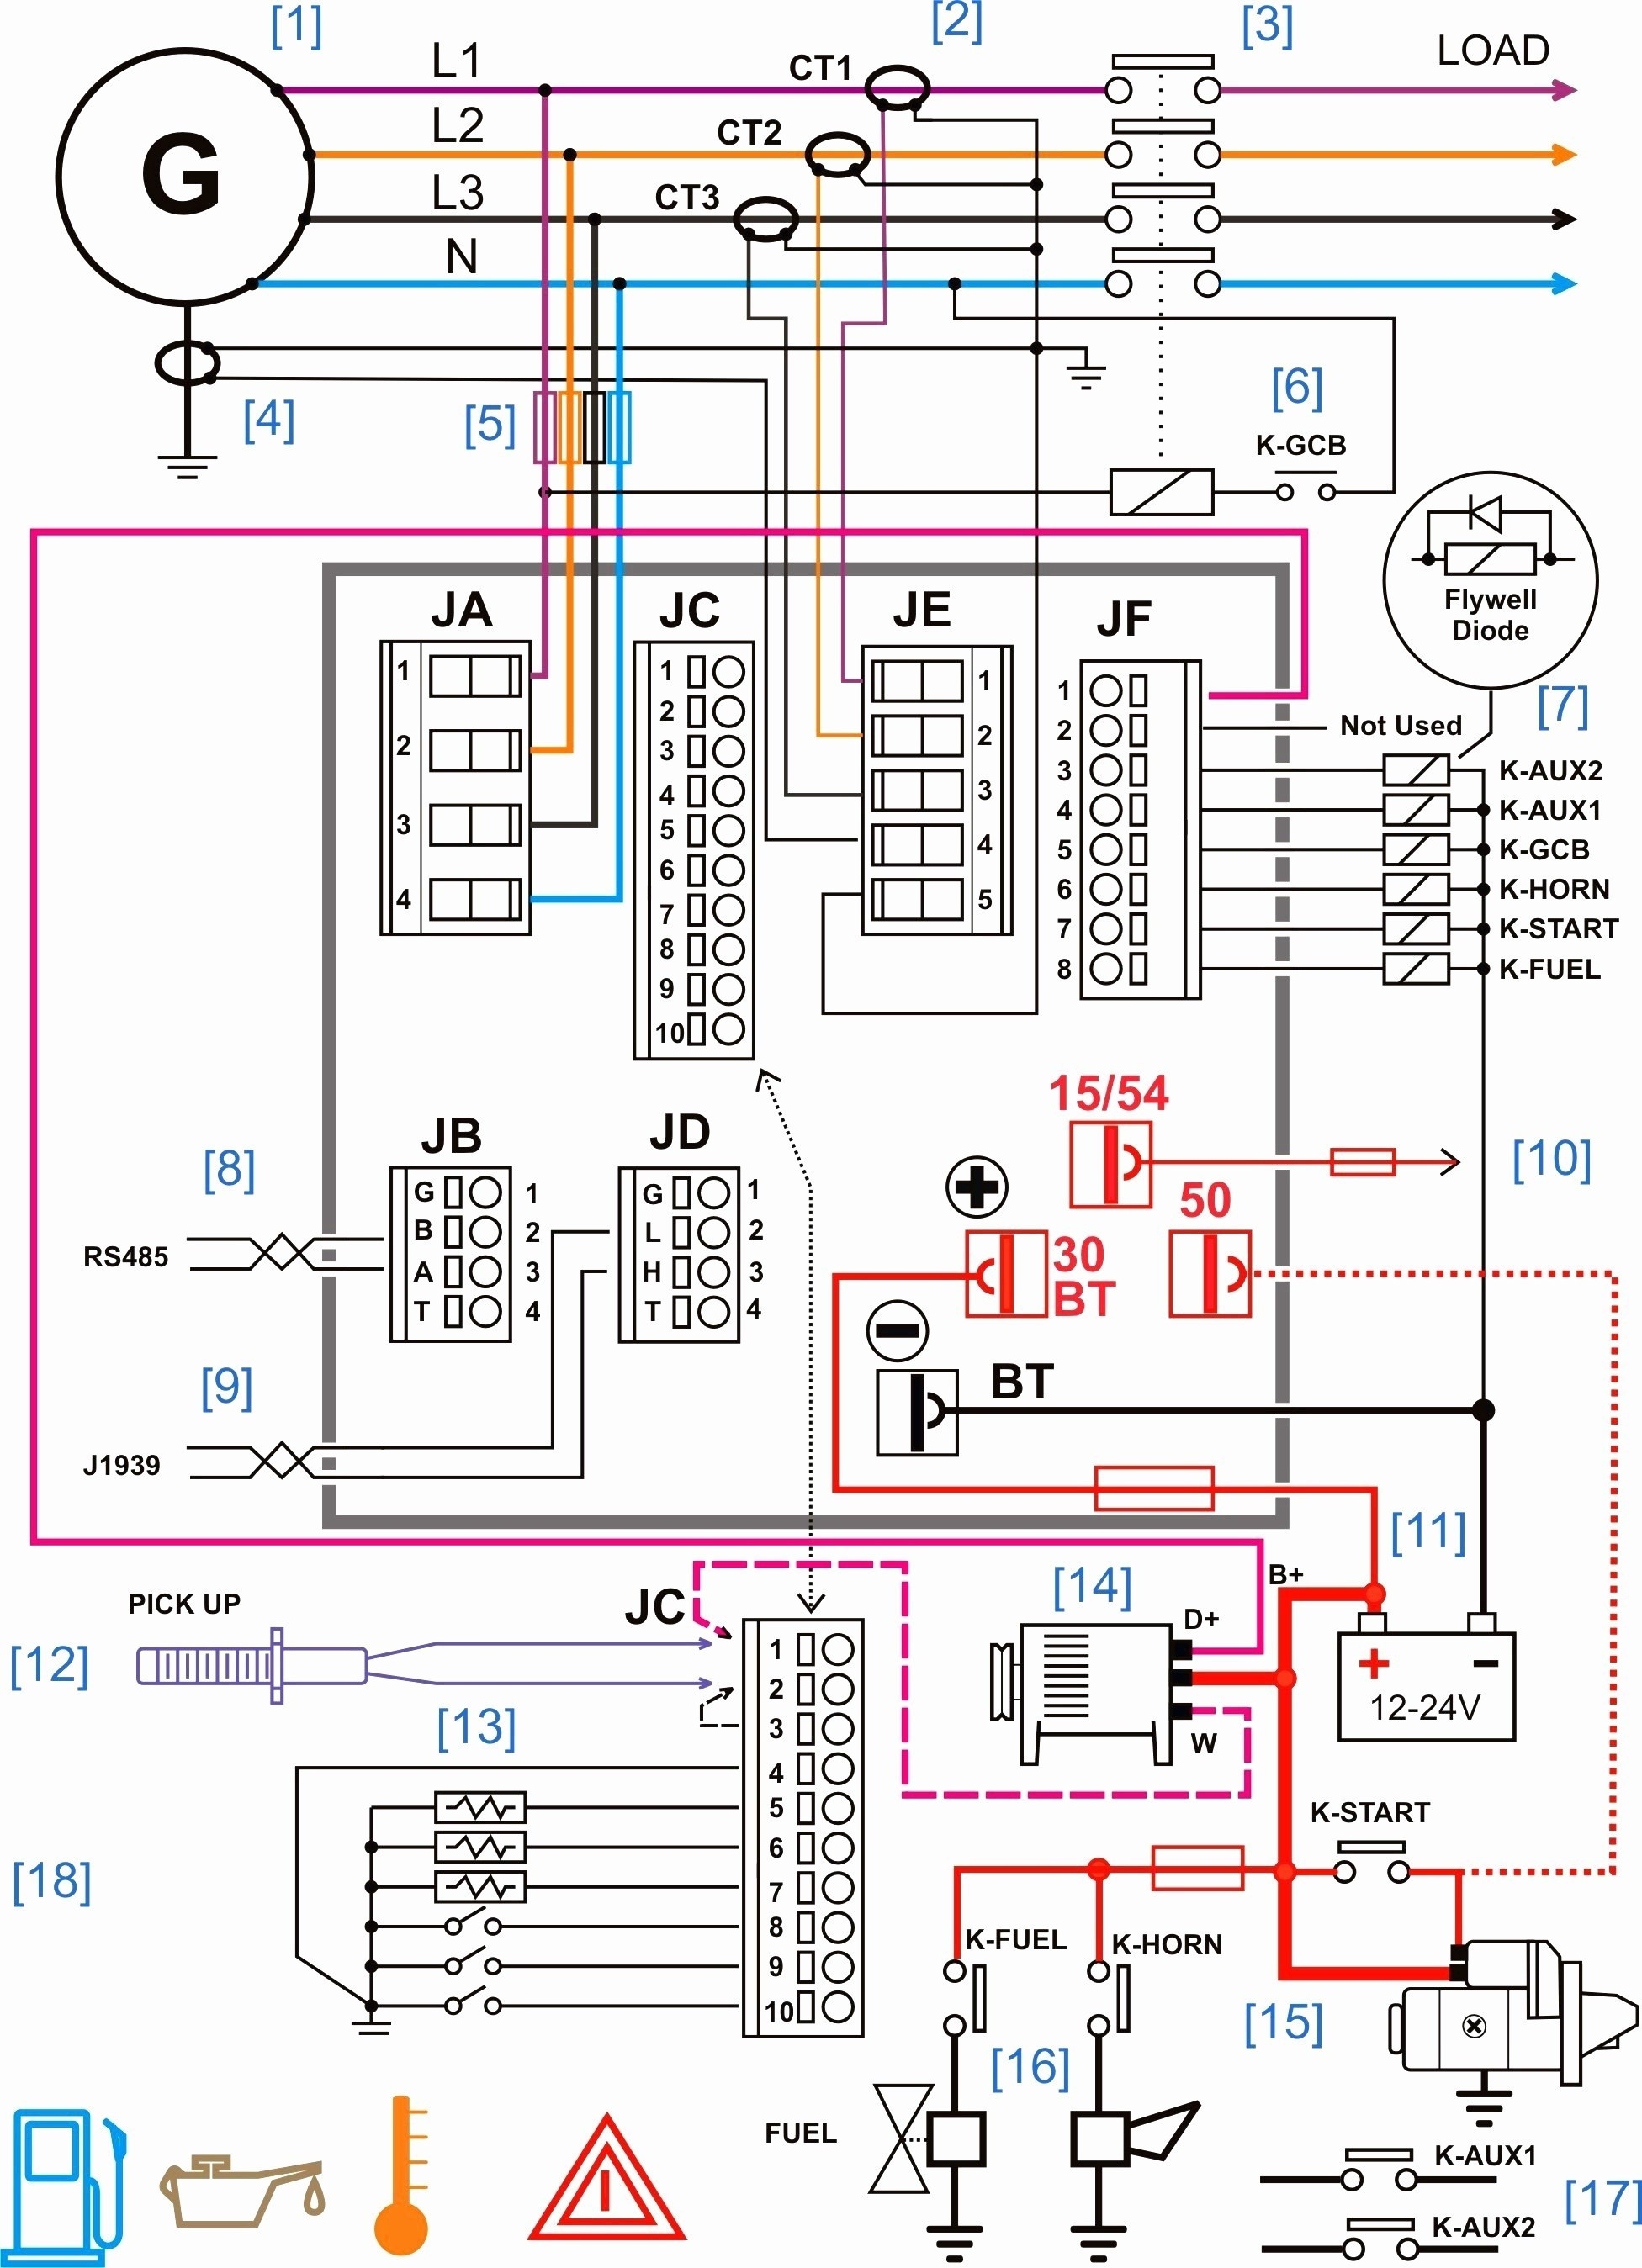 Electrical Wiring Diagram line Save Automotive Wiring Diagram Line Save Best Wiring Diagram Od Rv Park